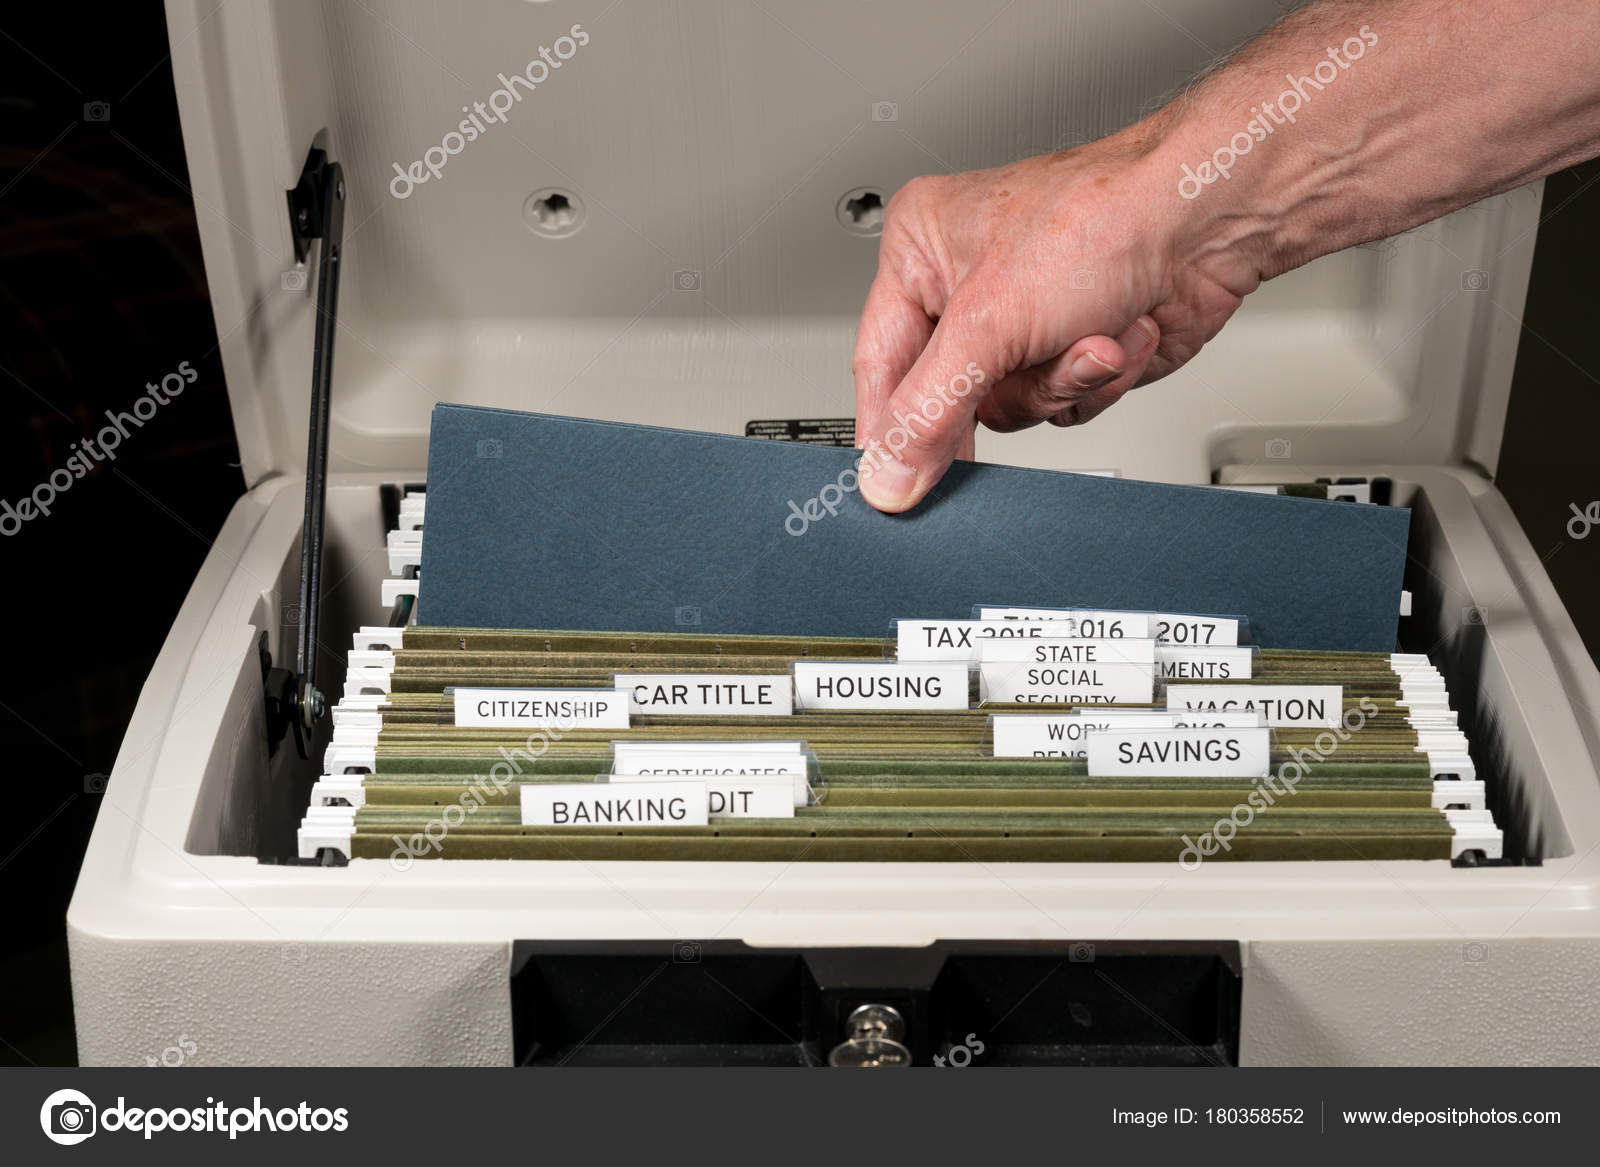 Home filing system for taxes organized in folders Stock Photo